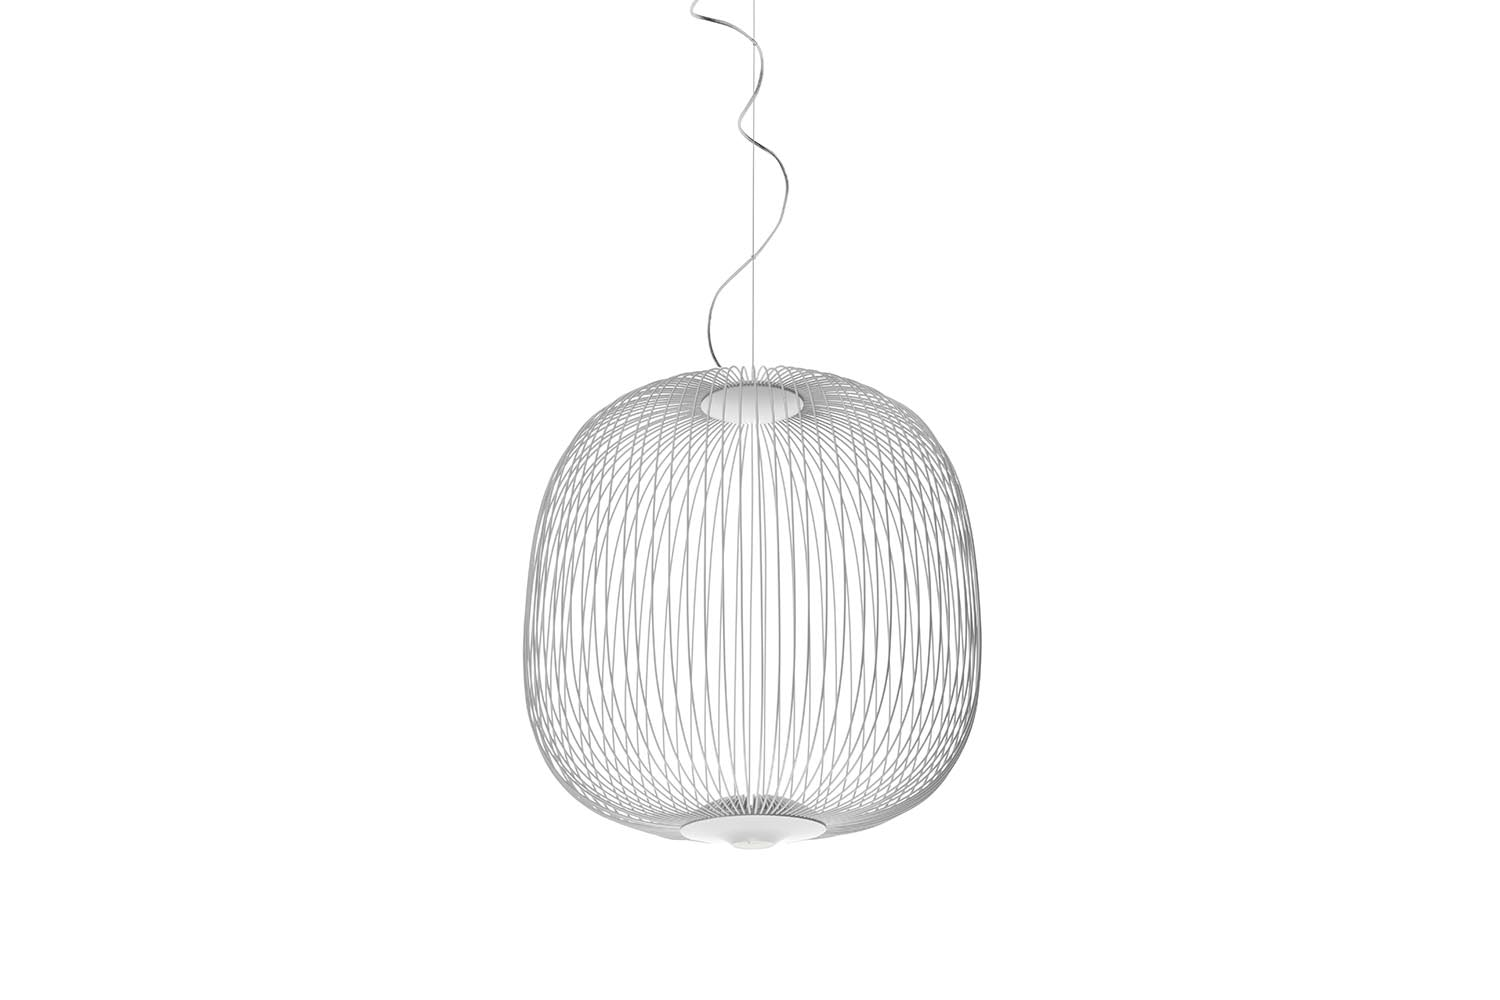 Spokes 2 Suspension Lamp by Garcia Cumini for Foscarini